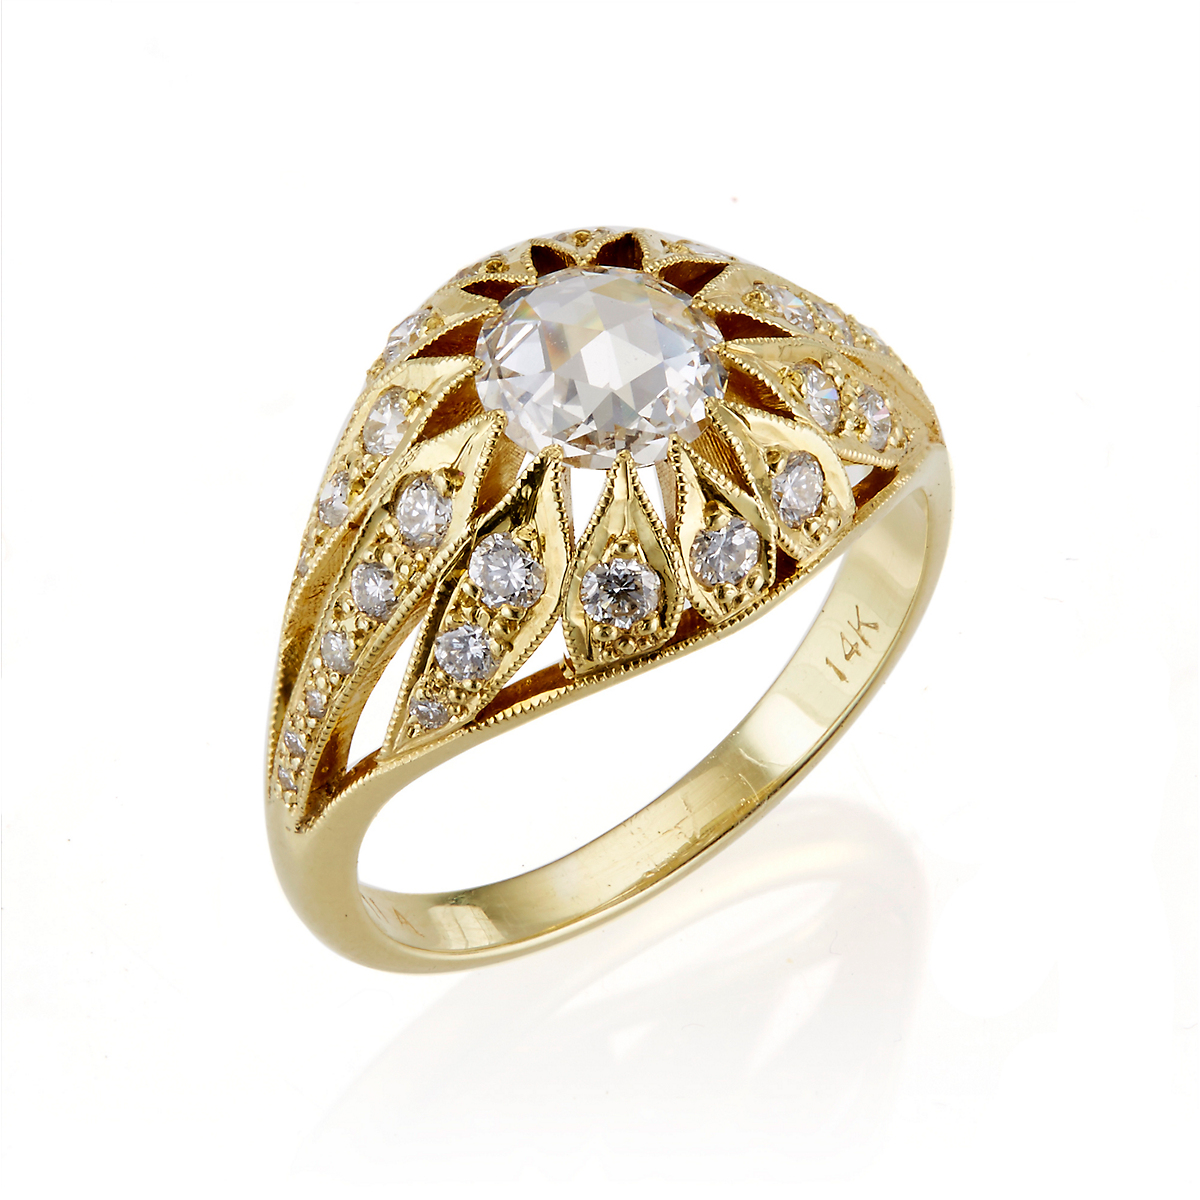 ILA Diamond & Recycled Gold Tamaya Ring